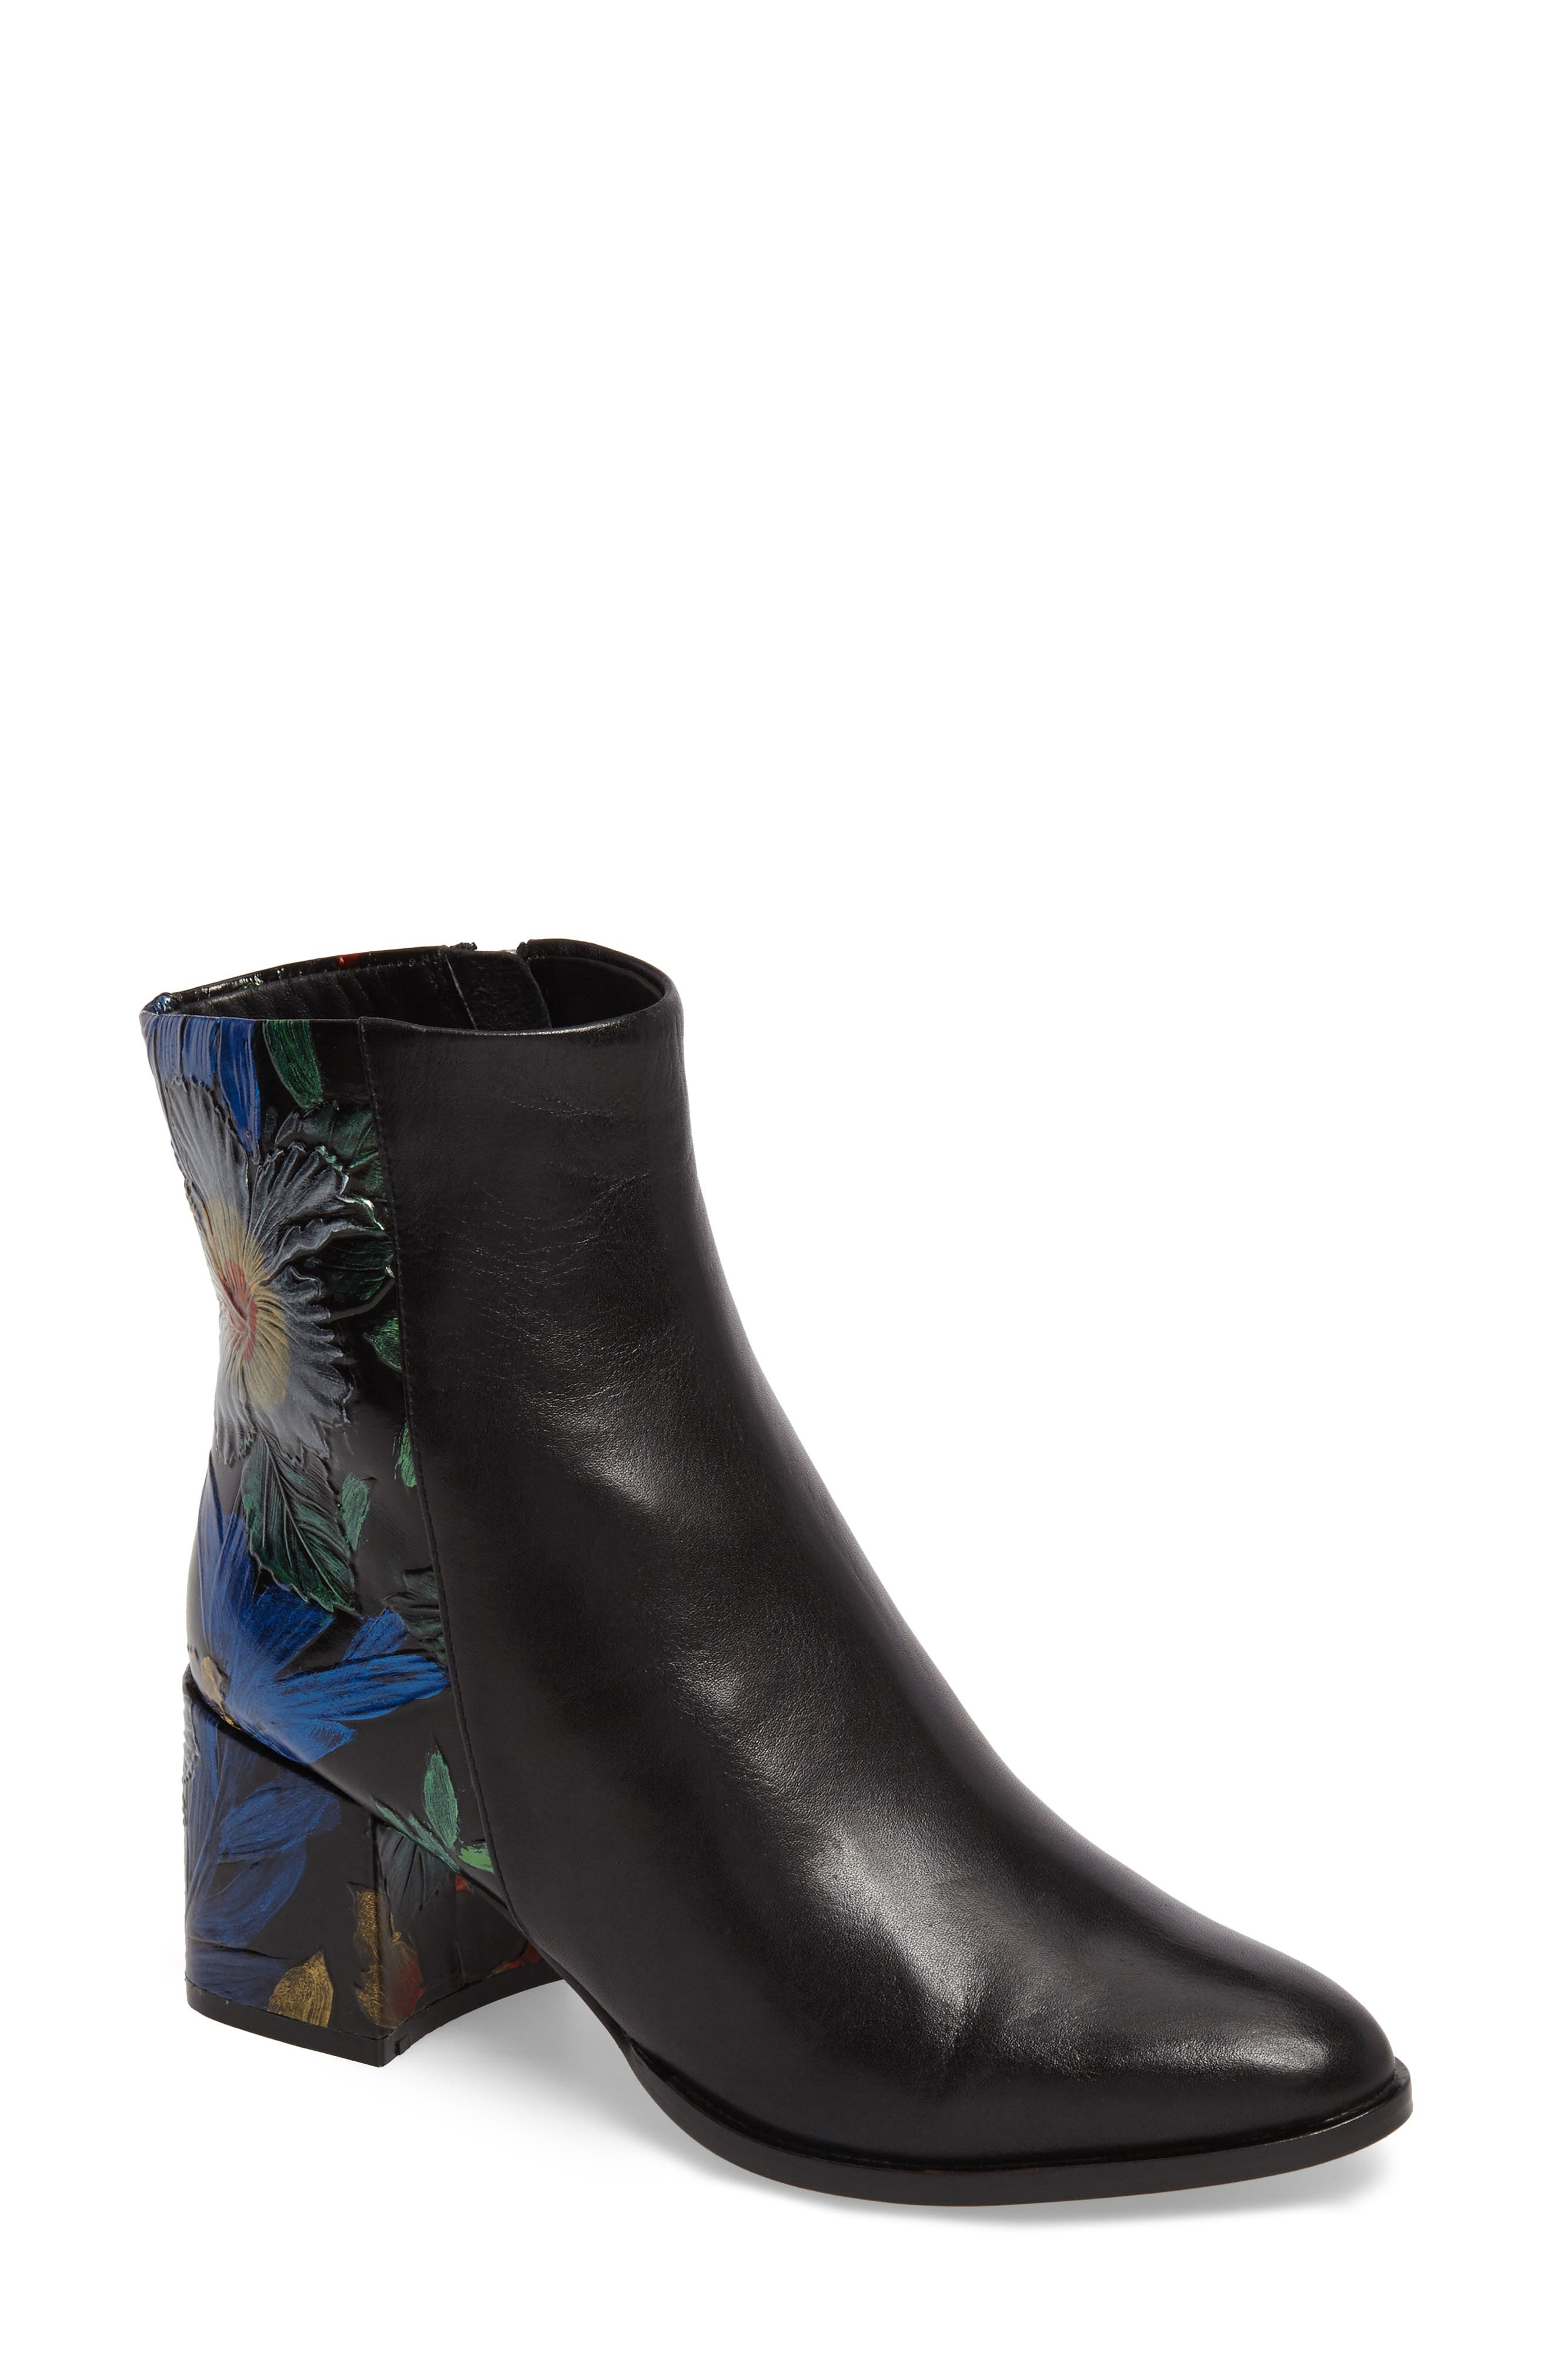 Alternate Image 1 Selected - Linea Paolo Brady Embellished Boot (Women)